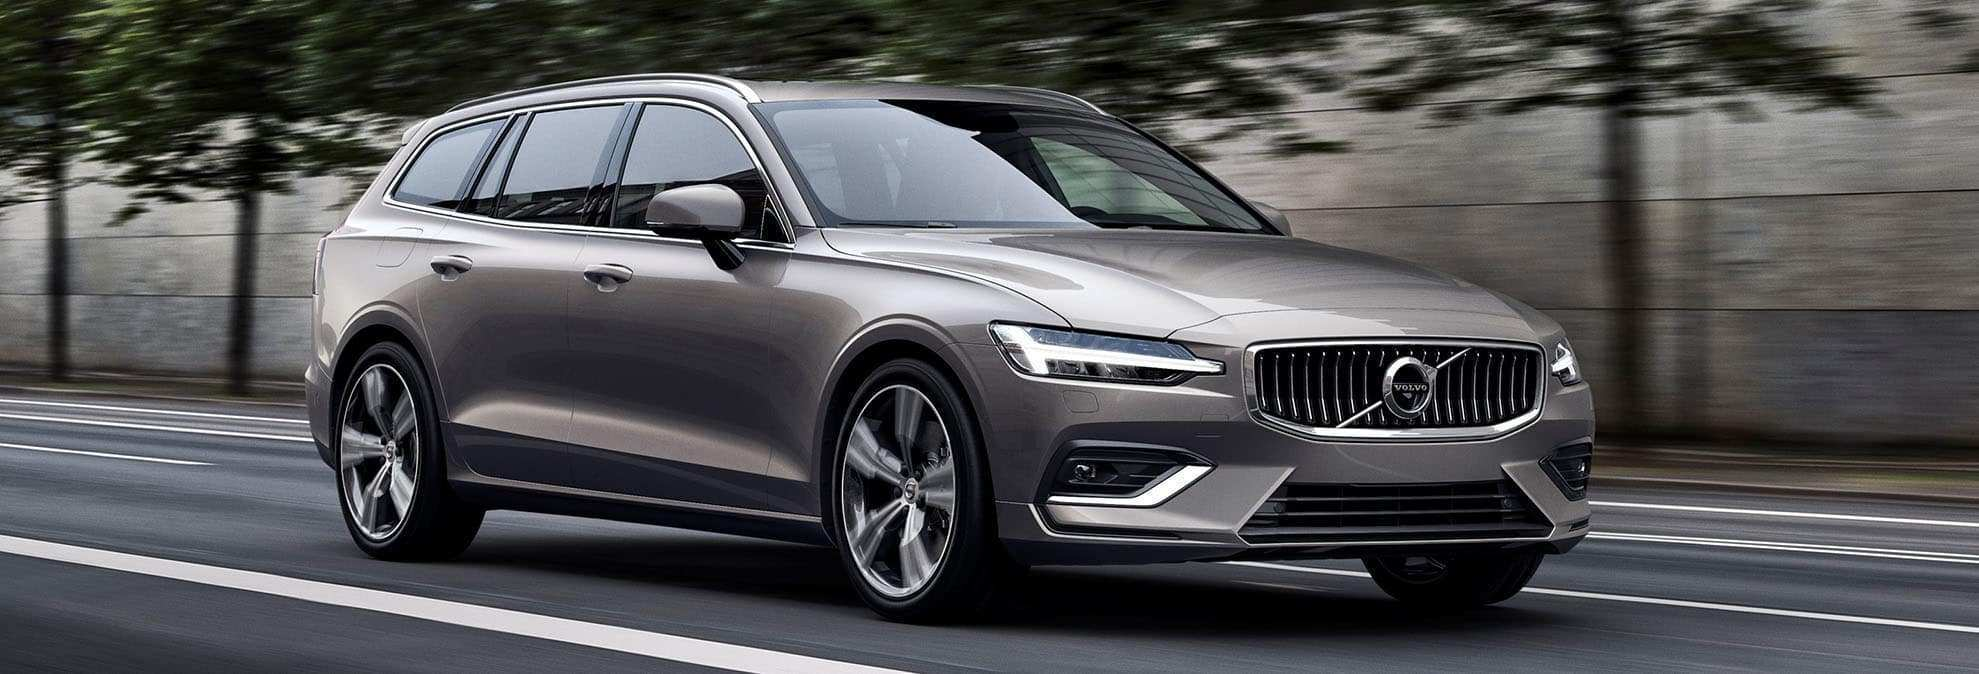 14 New Volvo In 2019 Exterior and Interior with Volvo In 2019